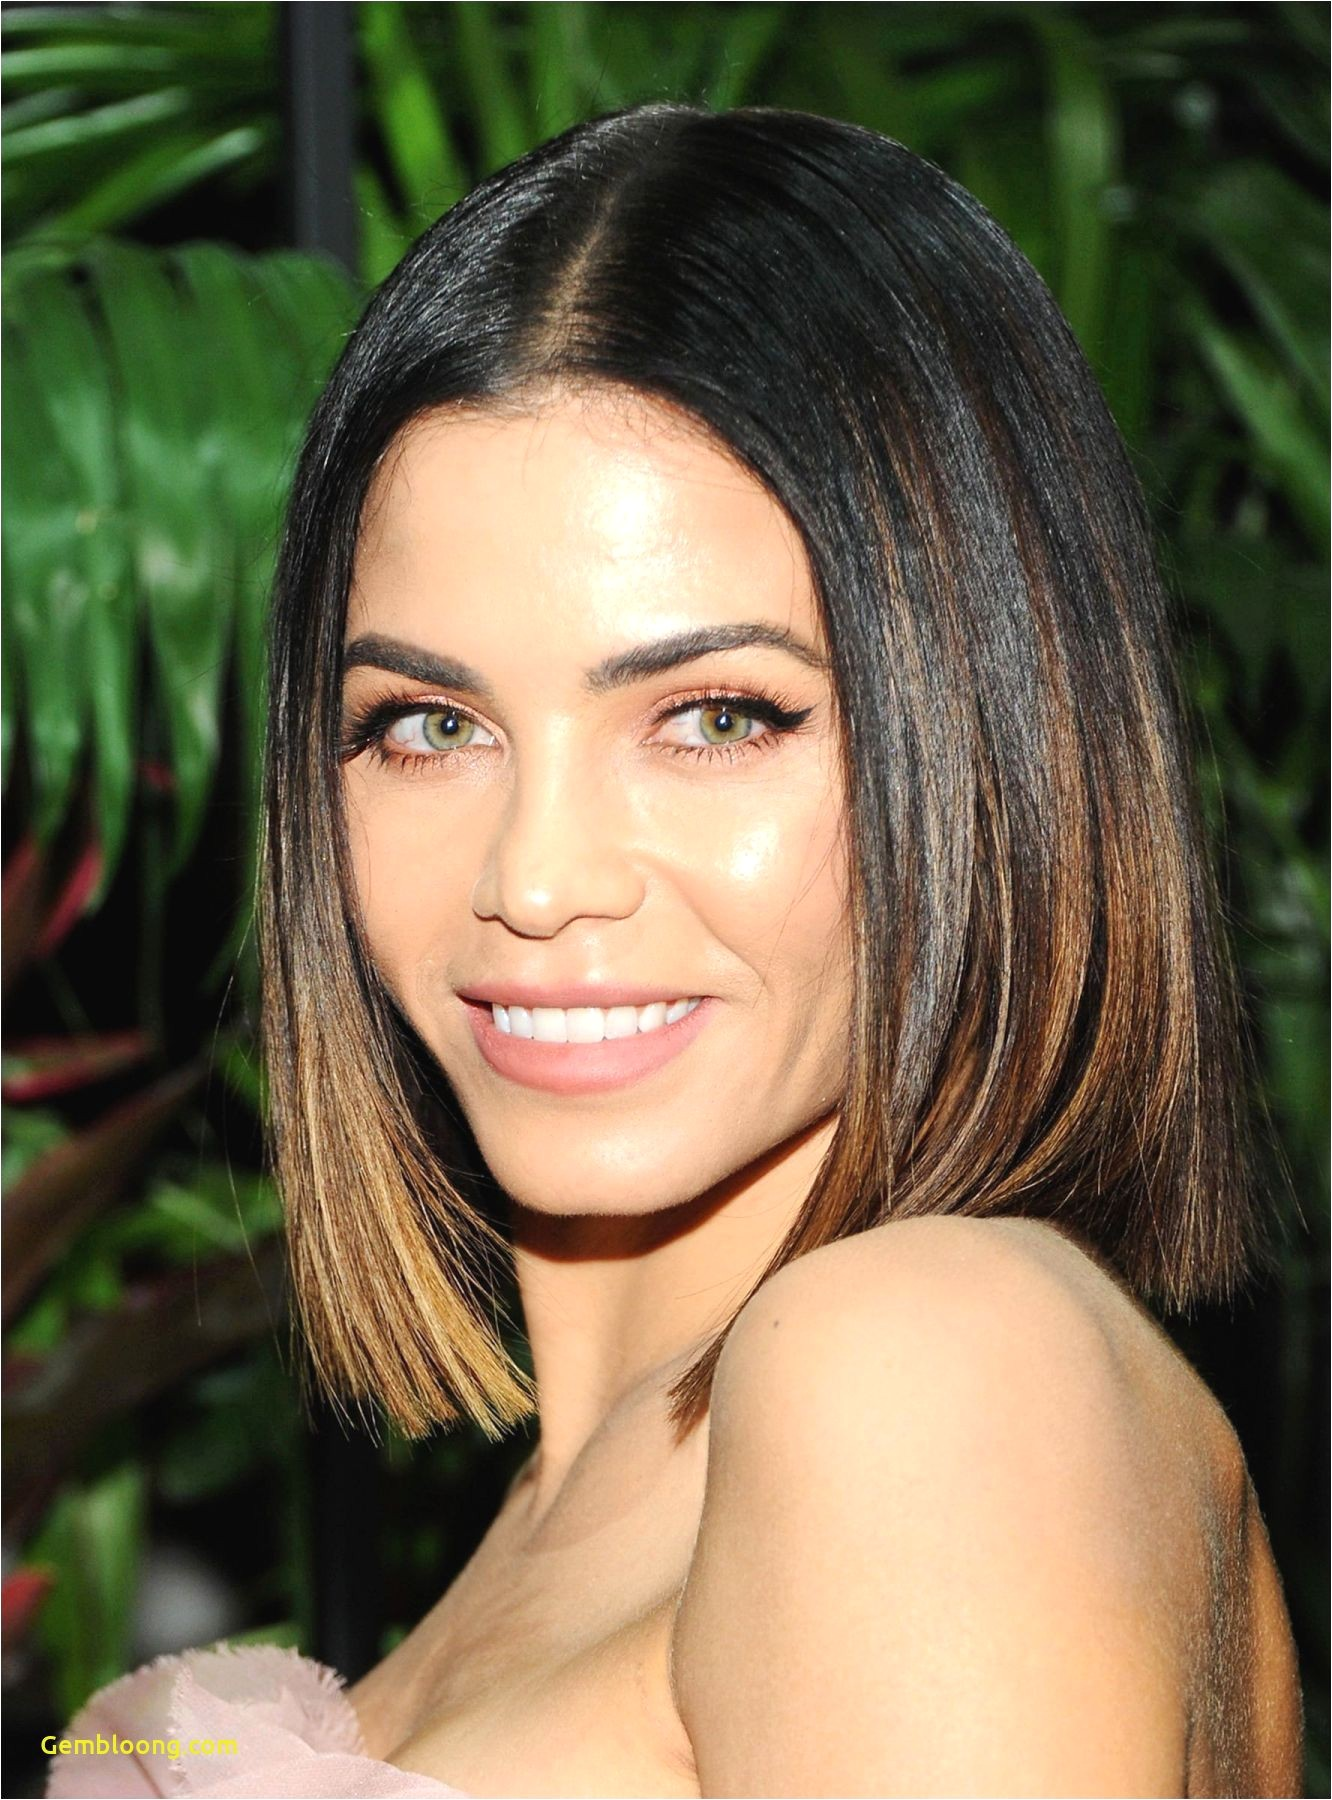 Hairstyles for Women Medium Length Best Extraordinary Hairstyles for Men Luxury Haircuts 0d New Stylewomens